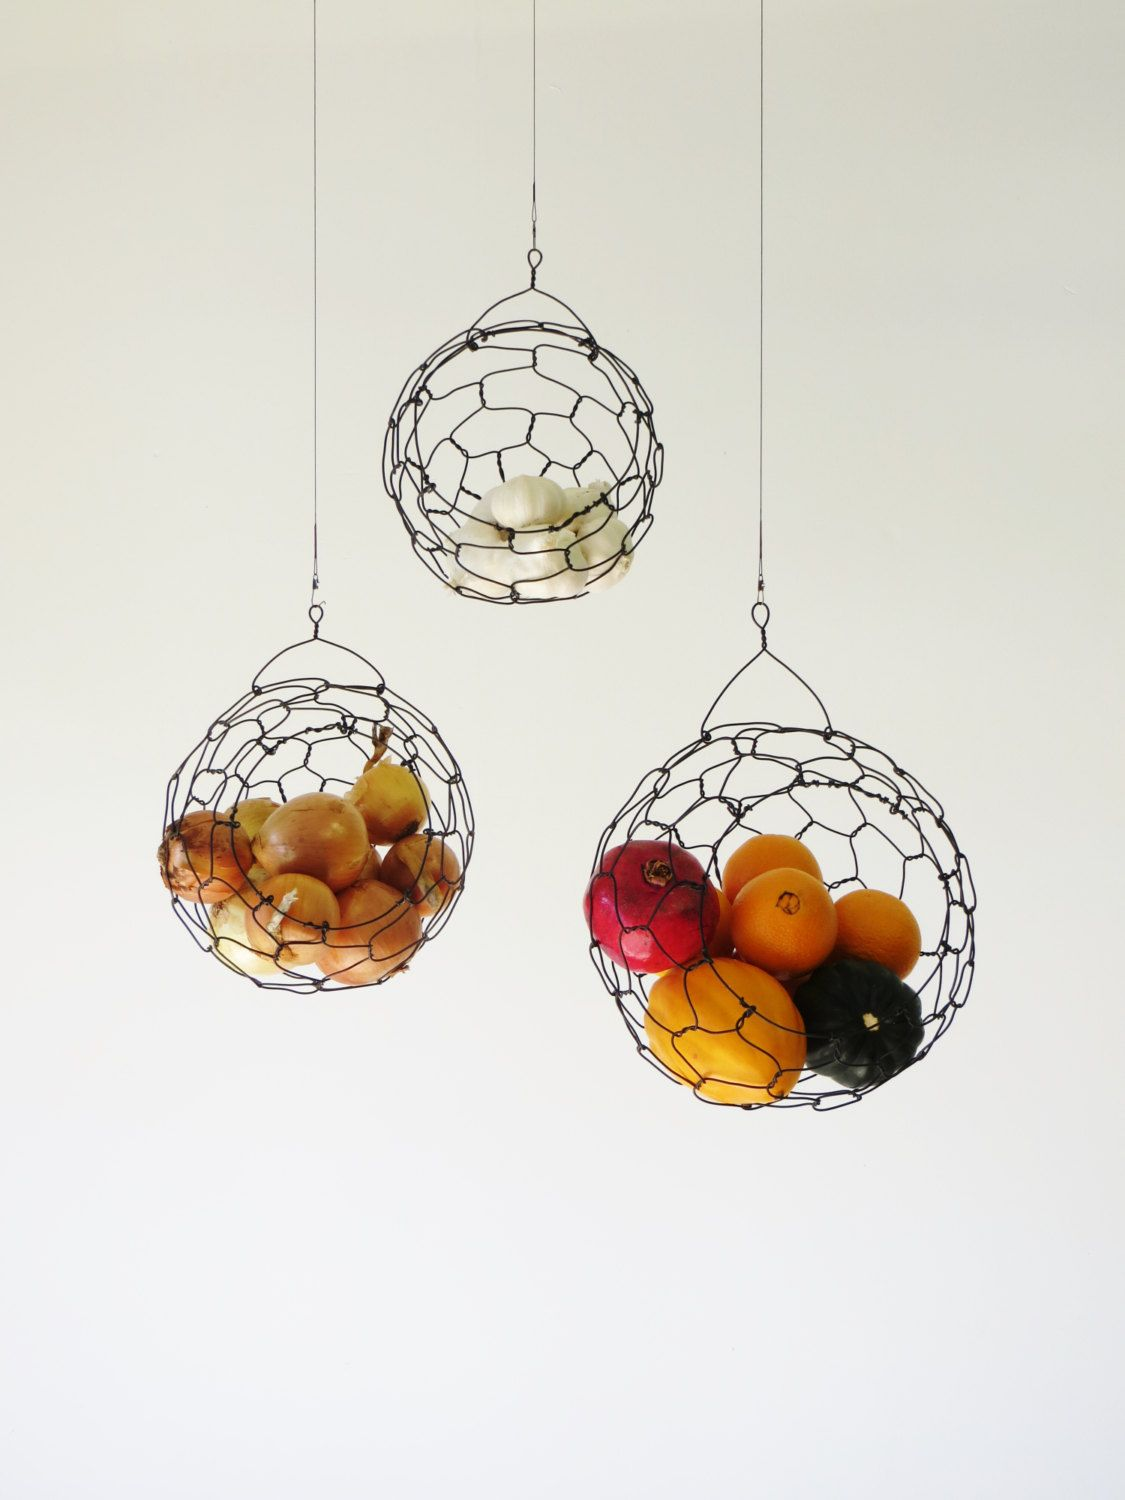 & Our New Obsession u2013 Hanging Fruit Baskets